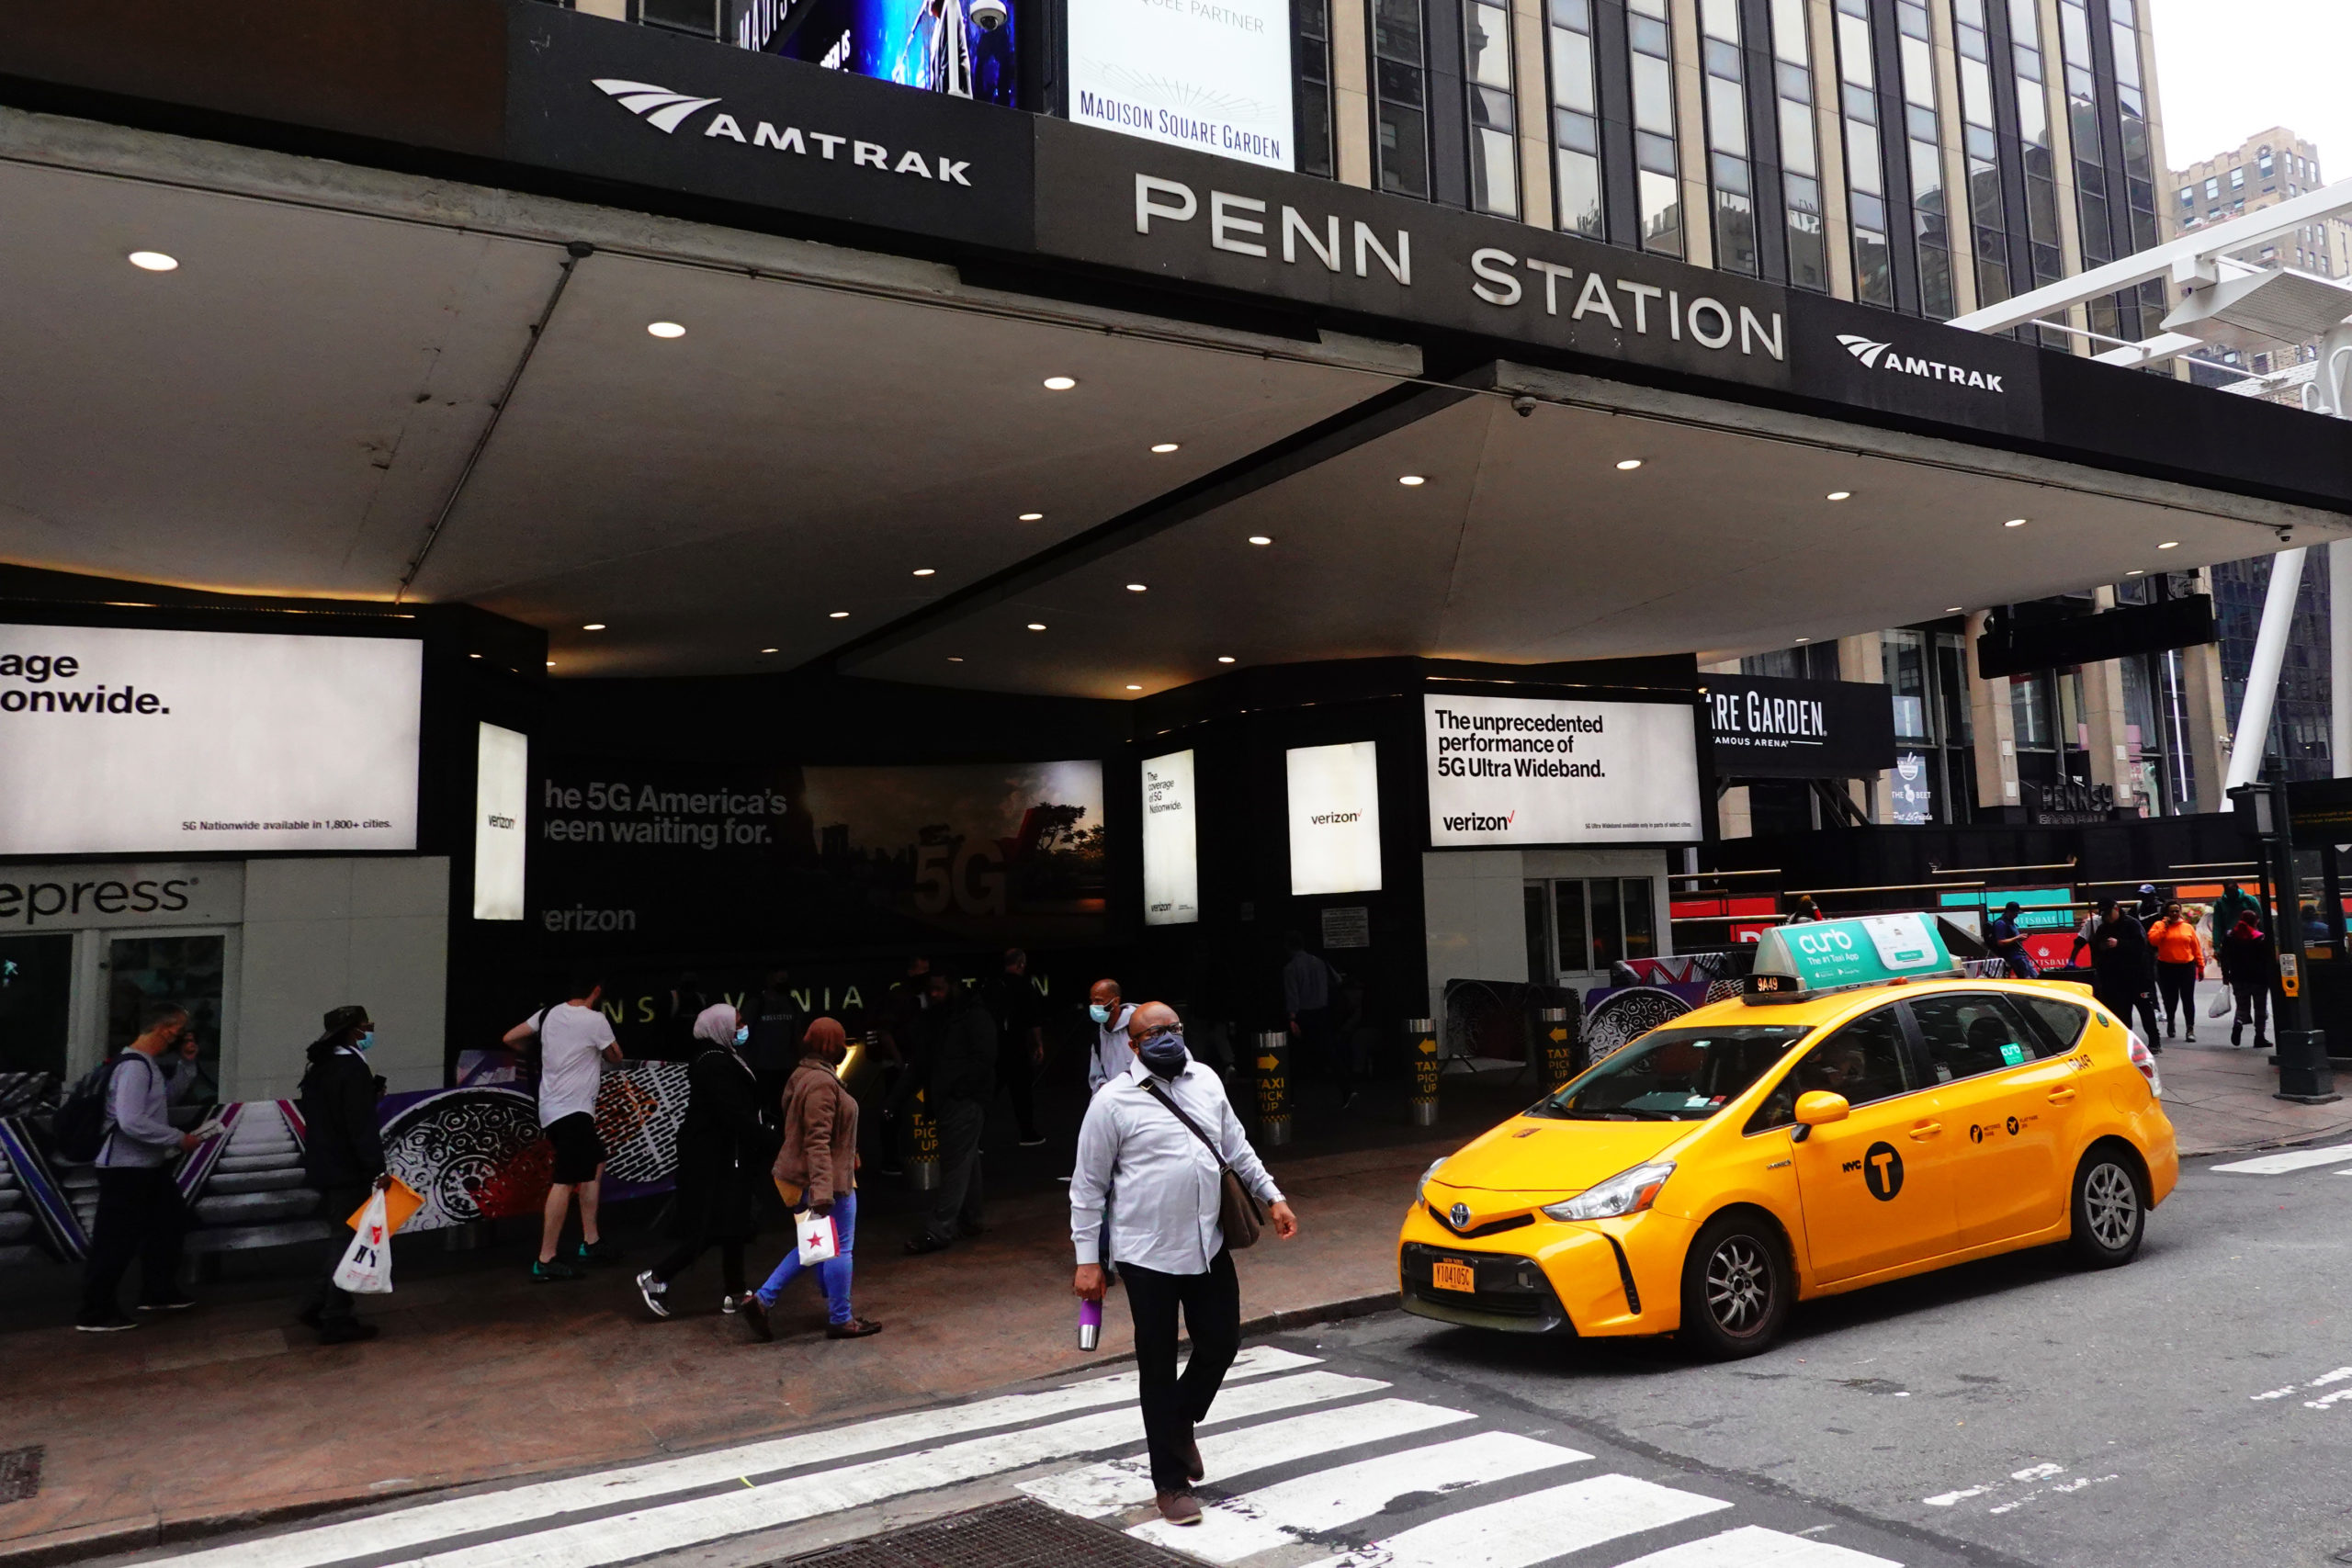 NEW YORK, NEW YORK - OCTOBER 22: People walk past the entrance of Penn Station on October 22, 2020 in New York City. Due to the coronavirus (COVID-19) pandemic, Amtrak ridership is down over 70% compared to 2019. (Michael M. Santiago/Getty Images)